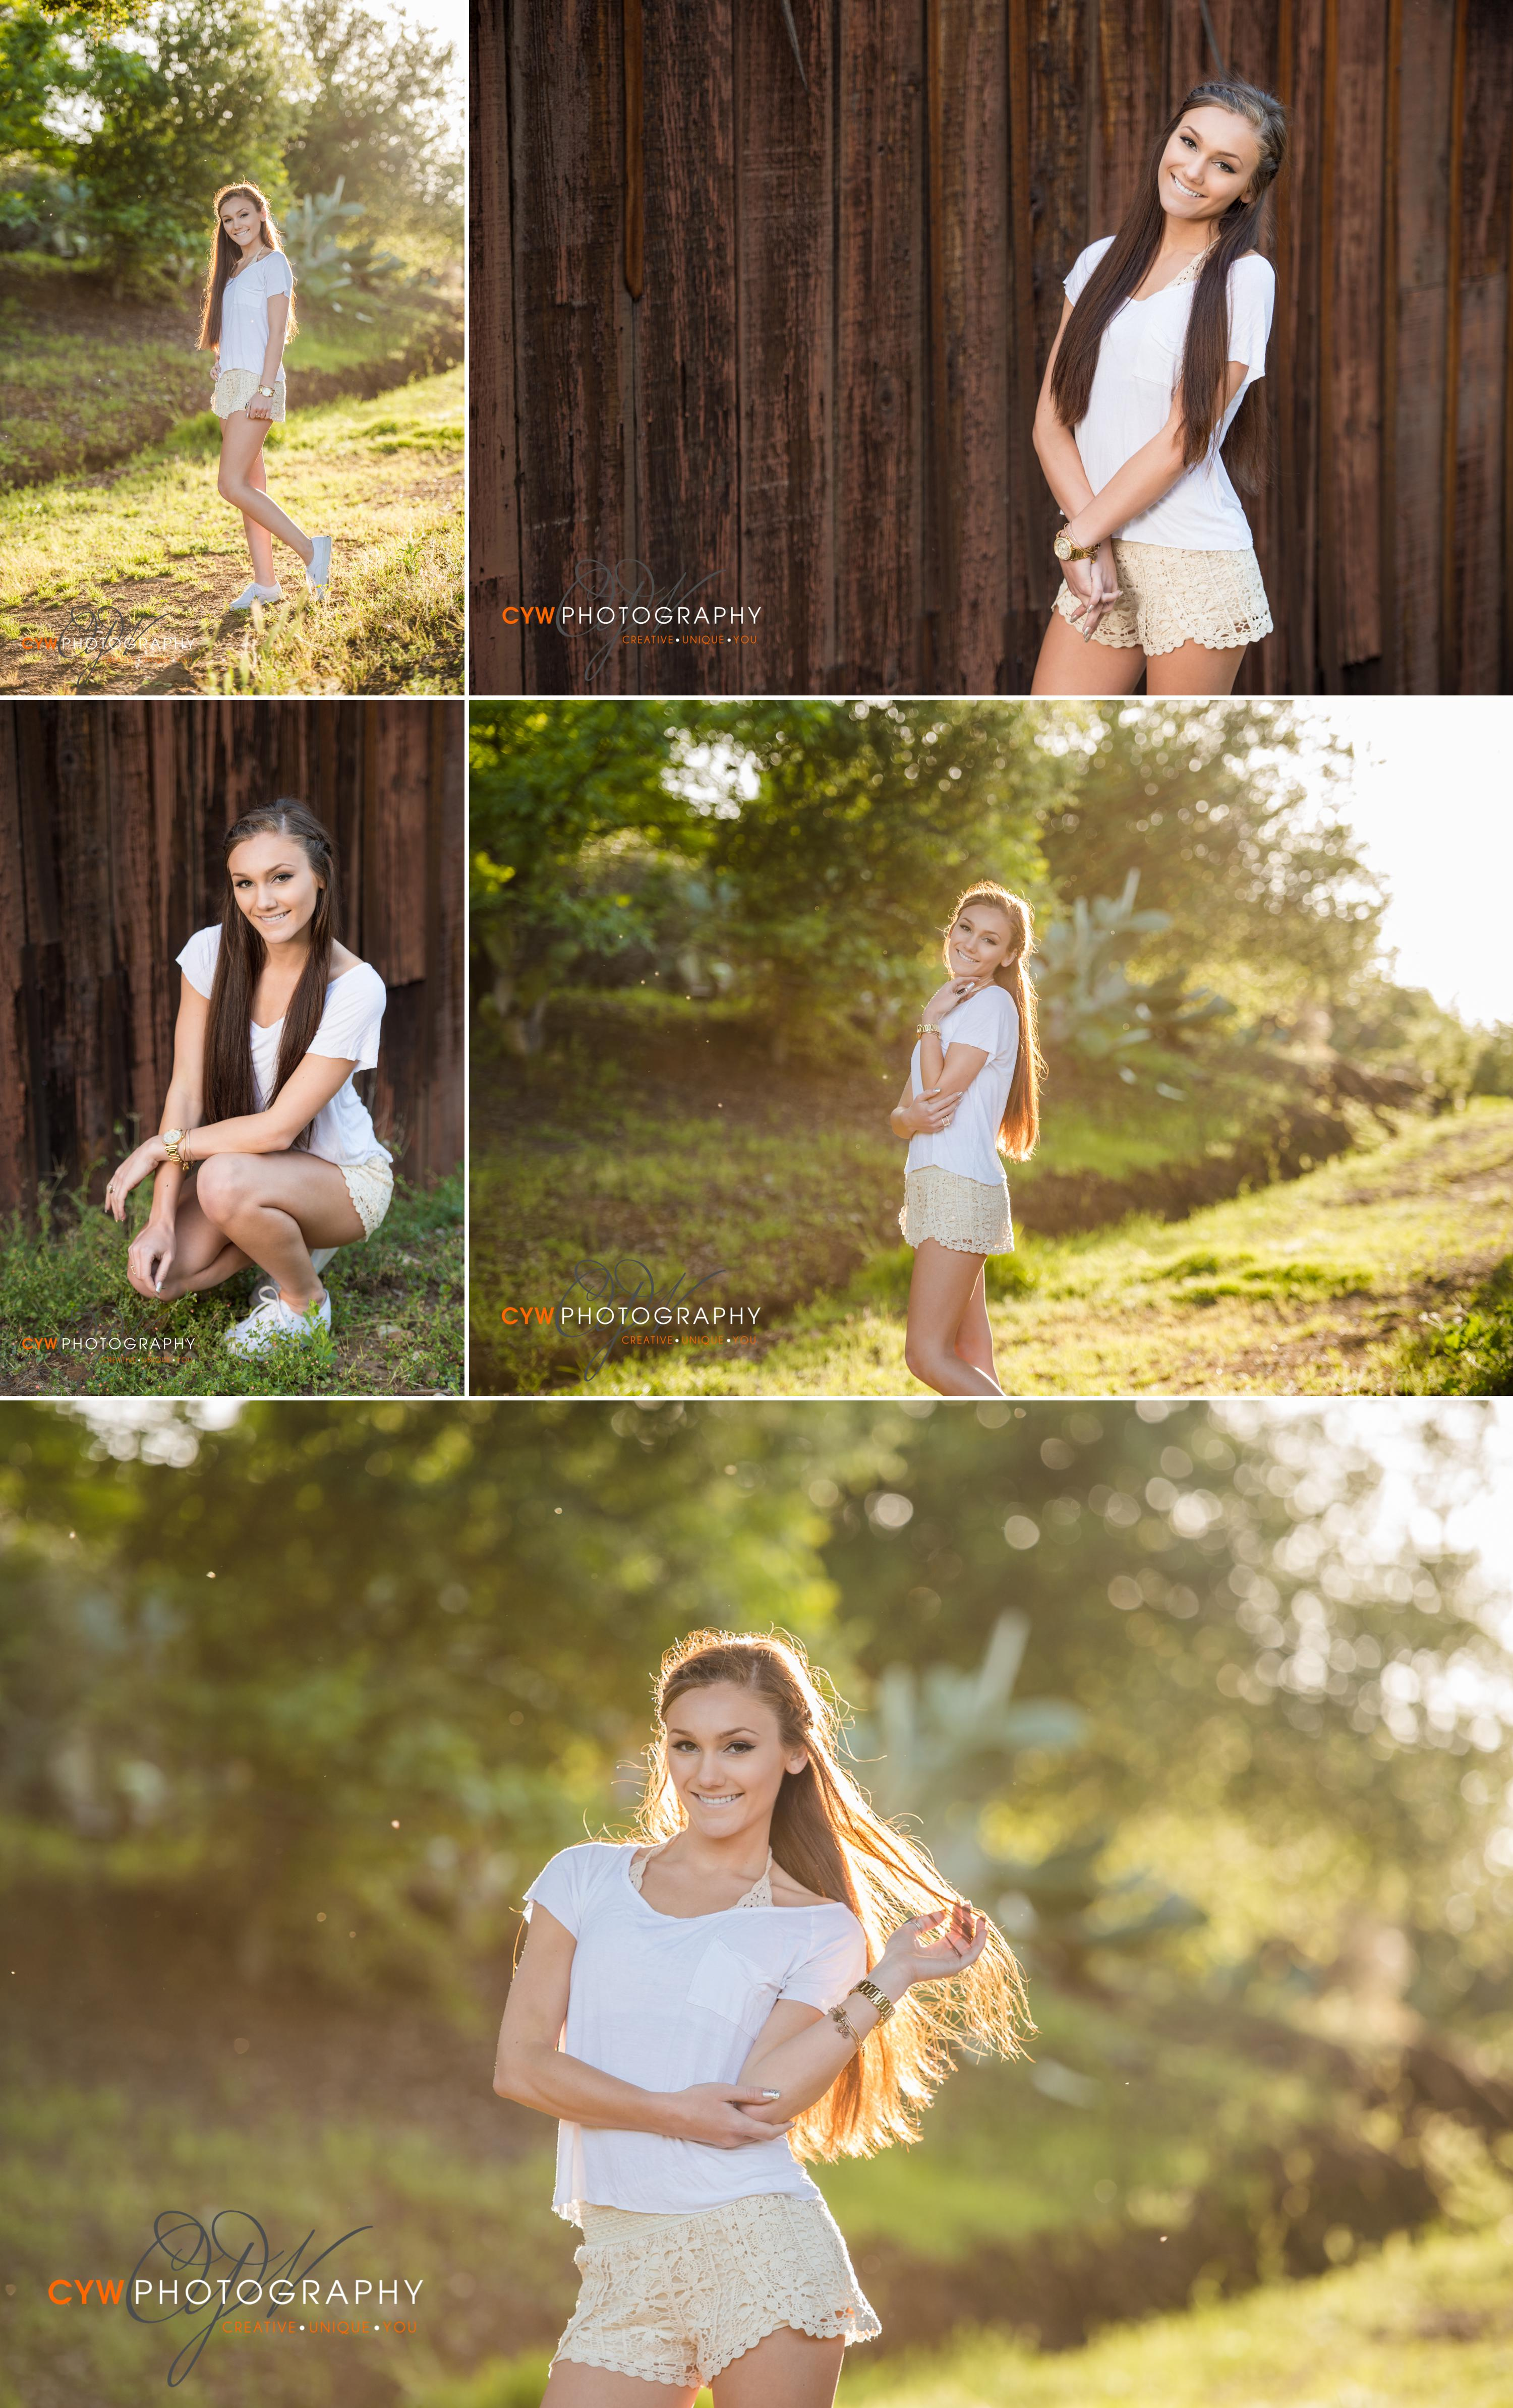 San Jose Los Gatos High School Senior Portraits CYW Photography Bay Area Santa Cruz 7